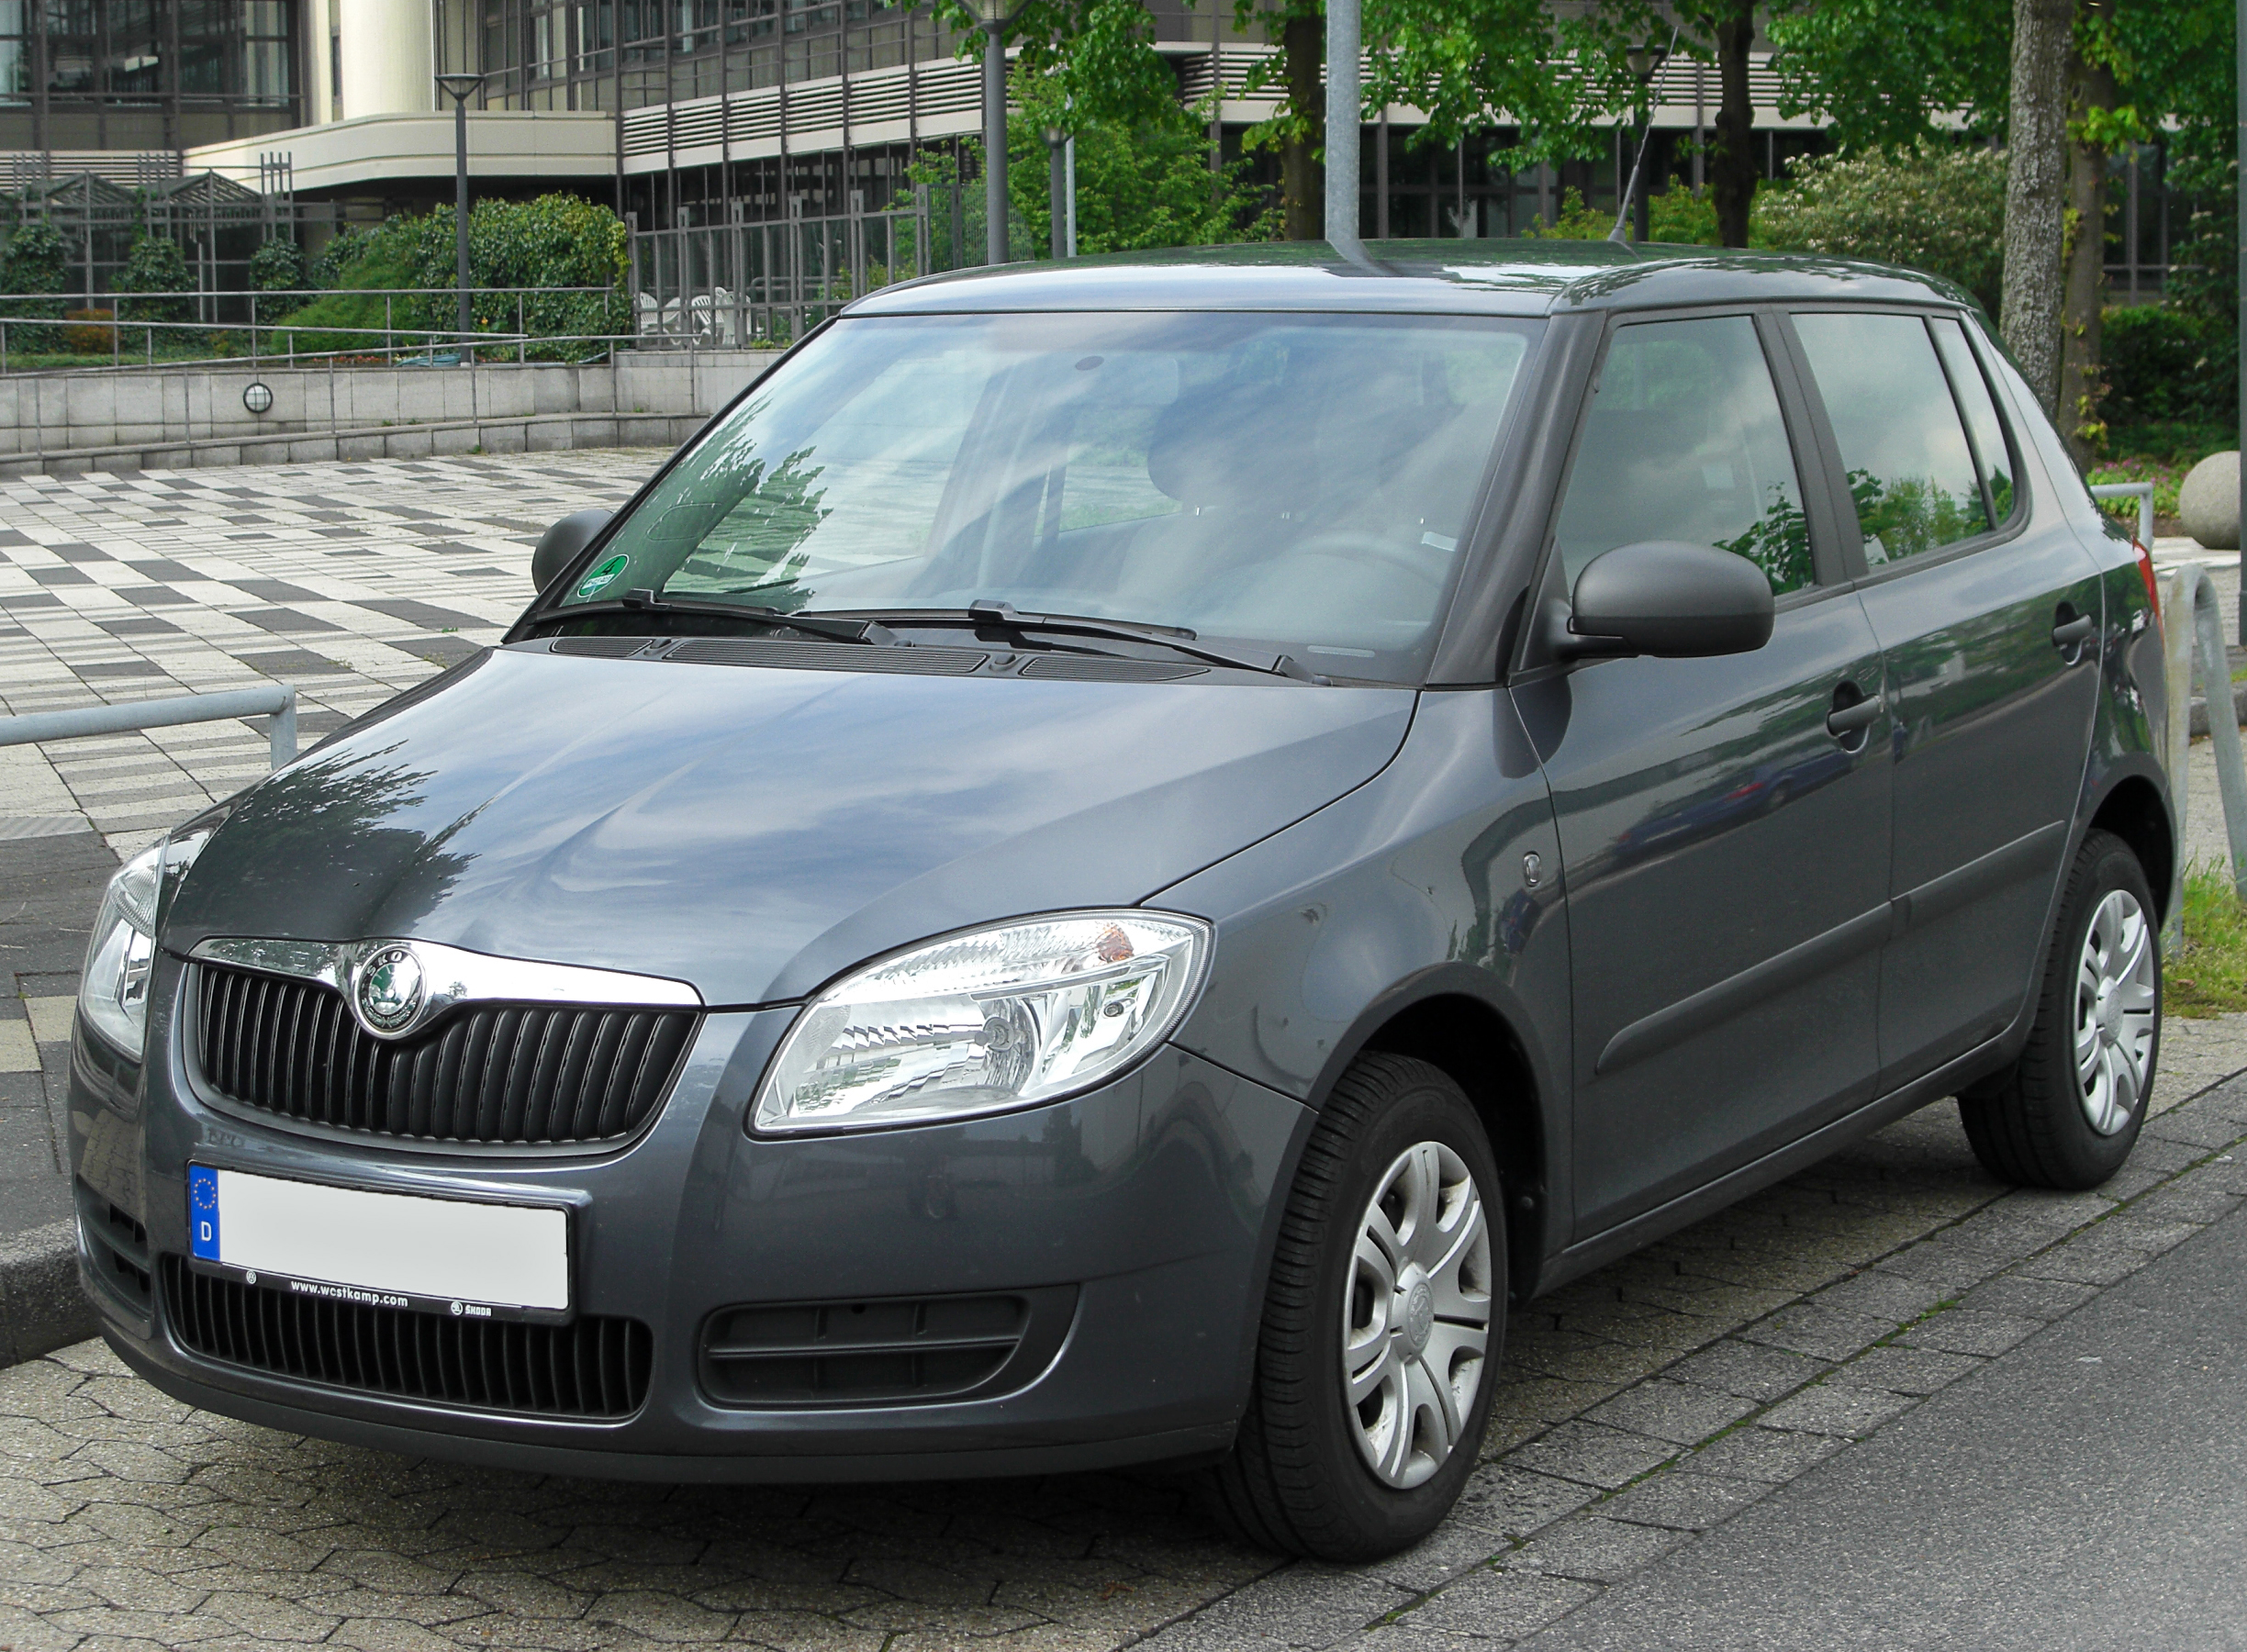 file skoda fabia ii front wikimedia commons. Black Bedroom Furniture Sets. Home Design Ideas